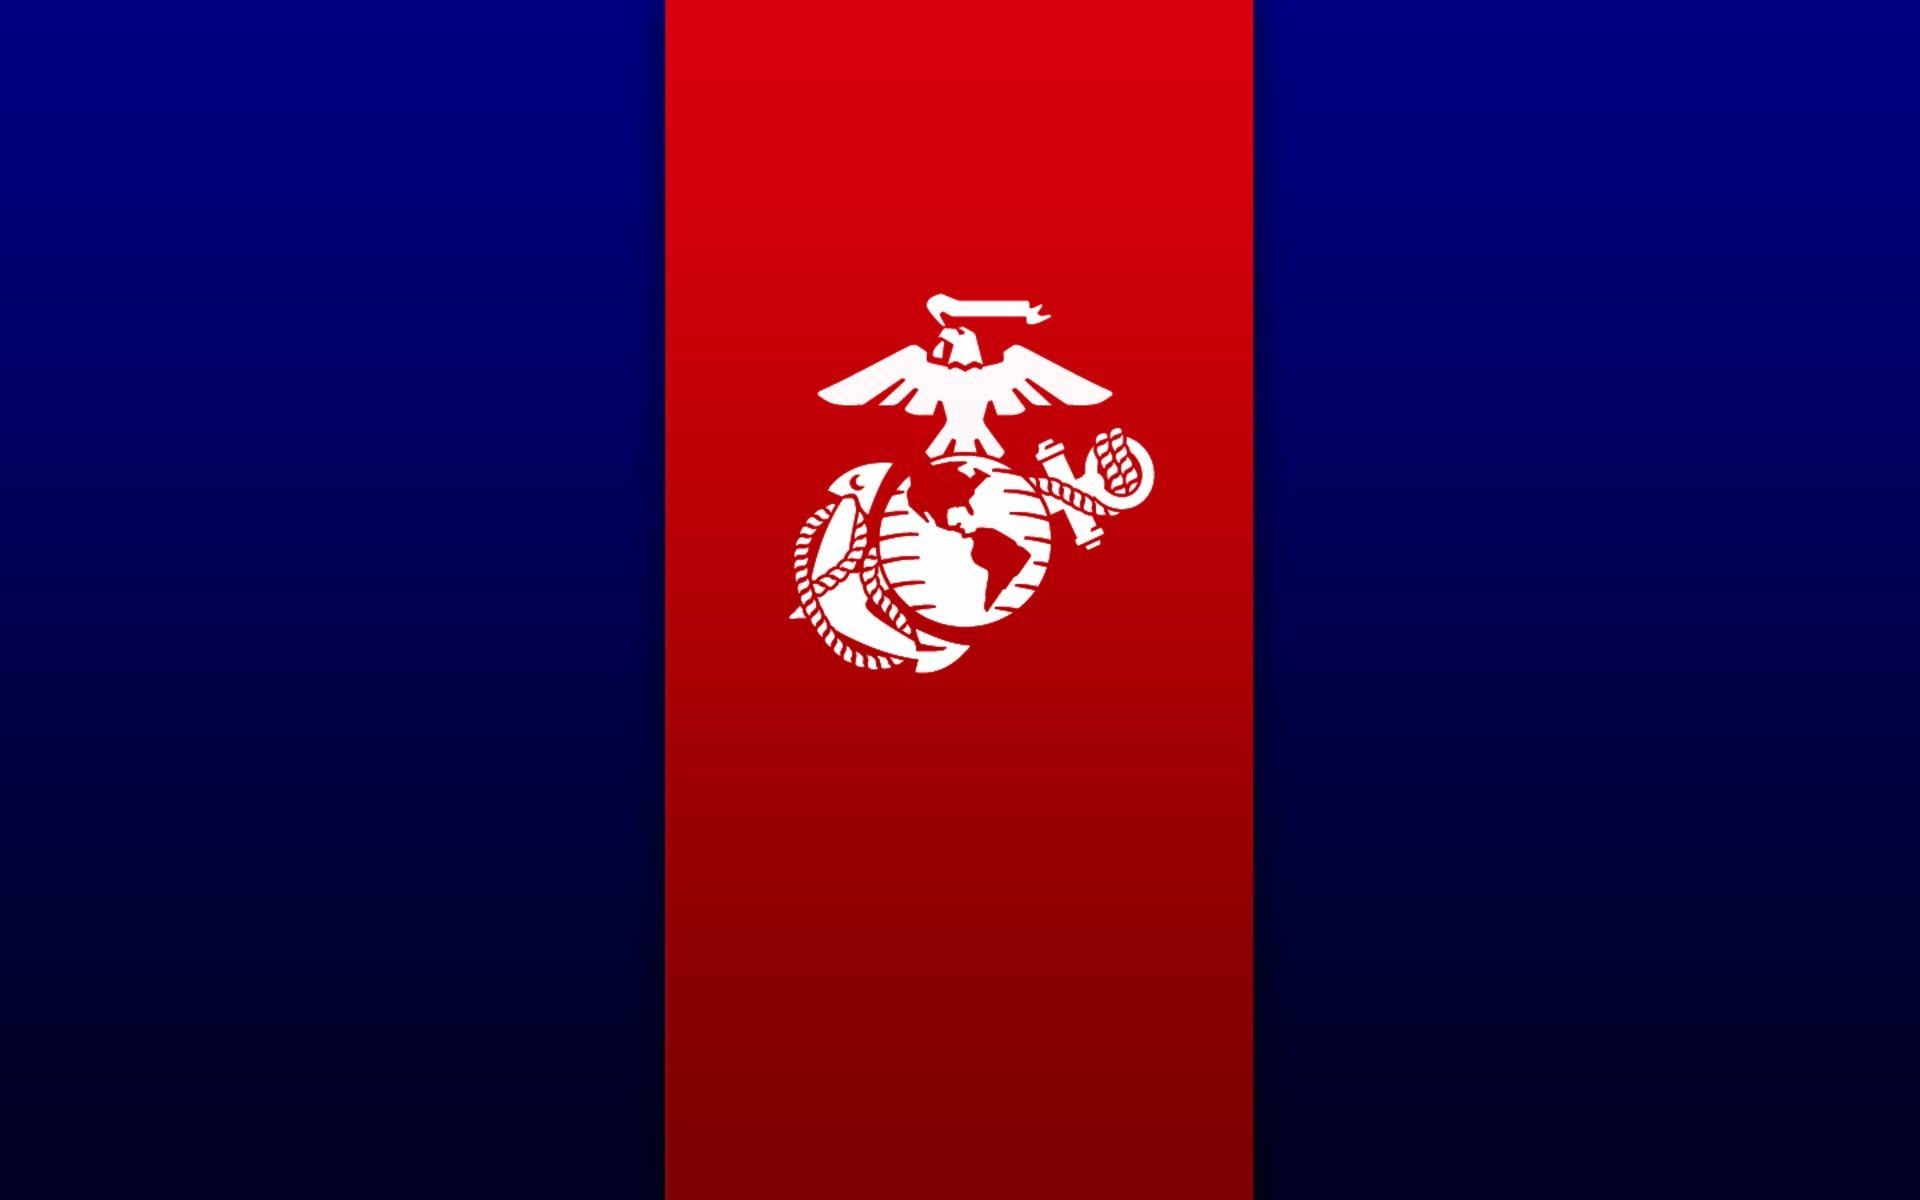 Res: 1920x1200, 1920x1440 Px HD Desktop Wallpaper : Wallpapers Usmc Red And Blue Background